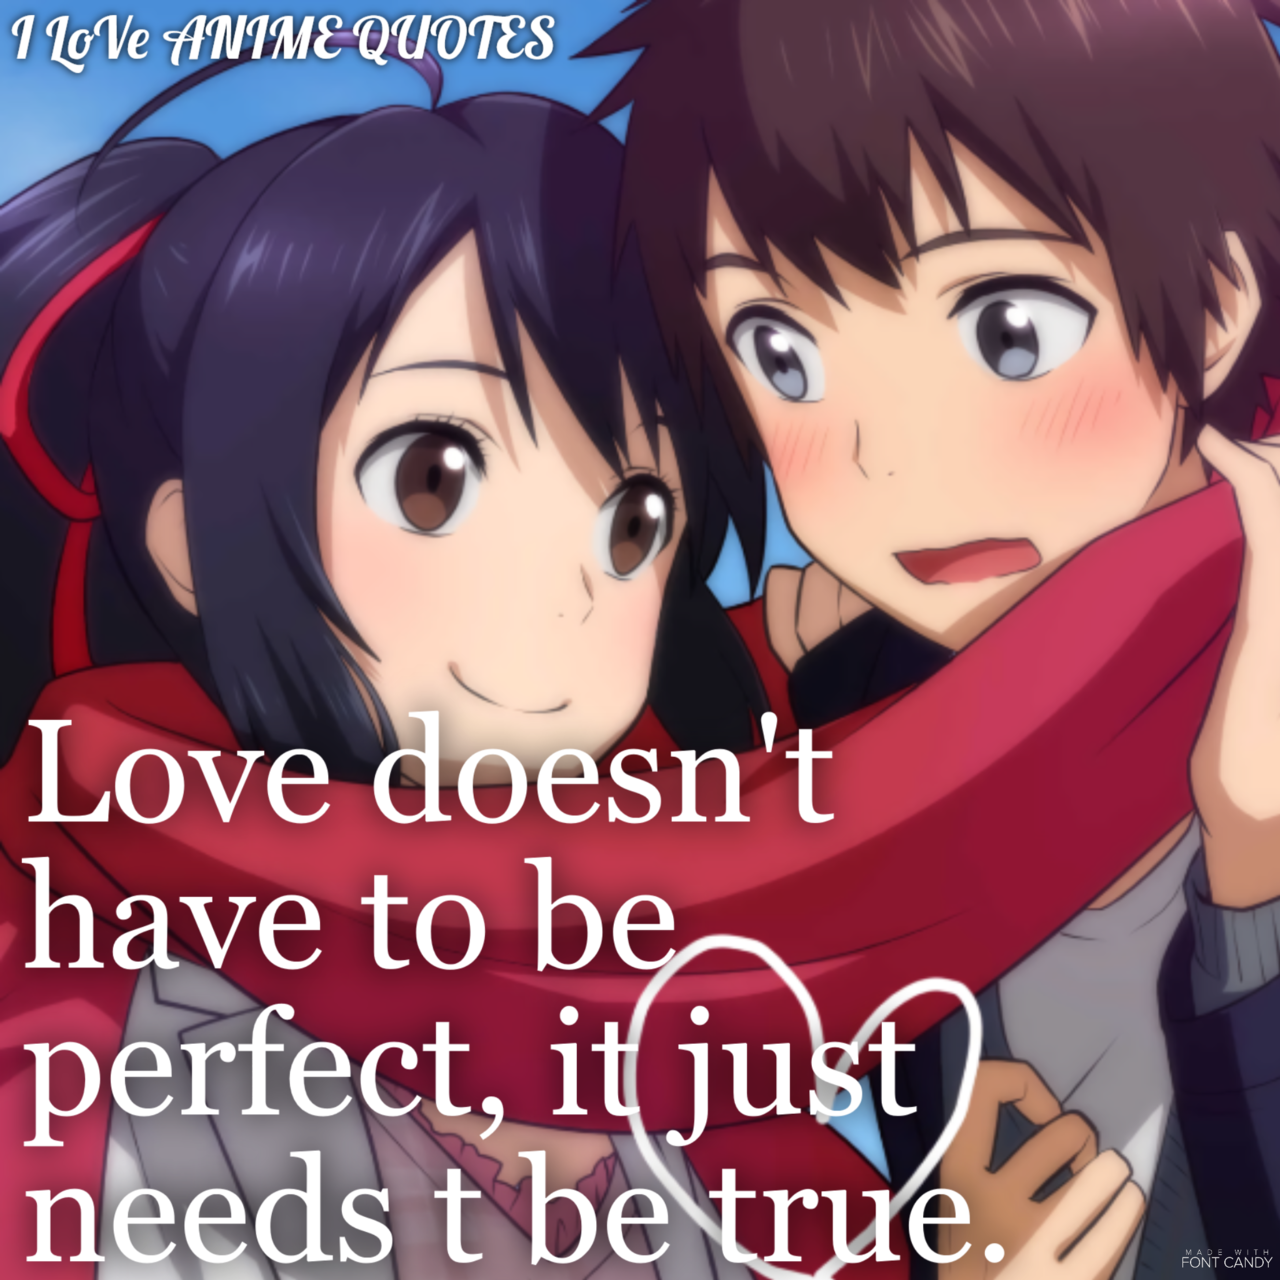 Anime Quotes About Friendship 593 Images About Anime On We Heart It  See More About Anime Gif